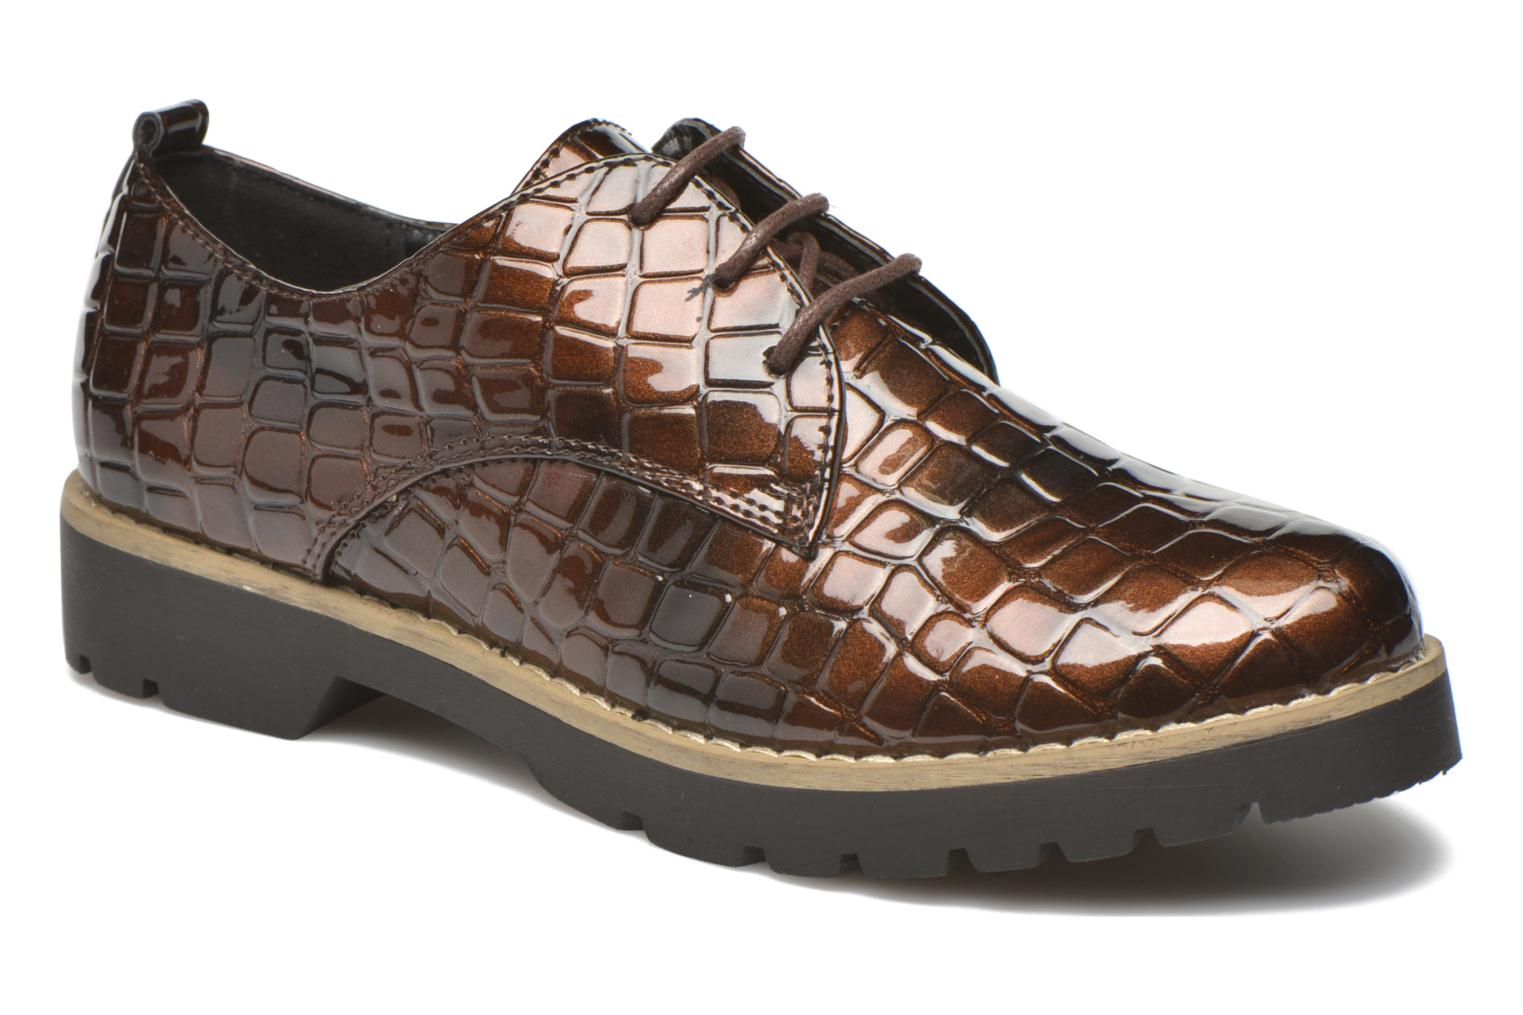 Dk Brown Croco Patent Thada I Shoes Love qx1nF6